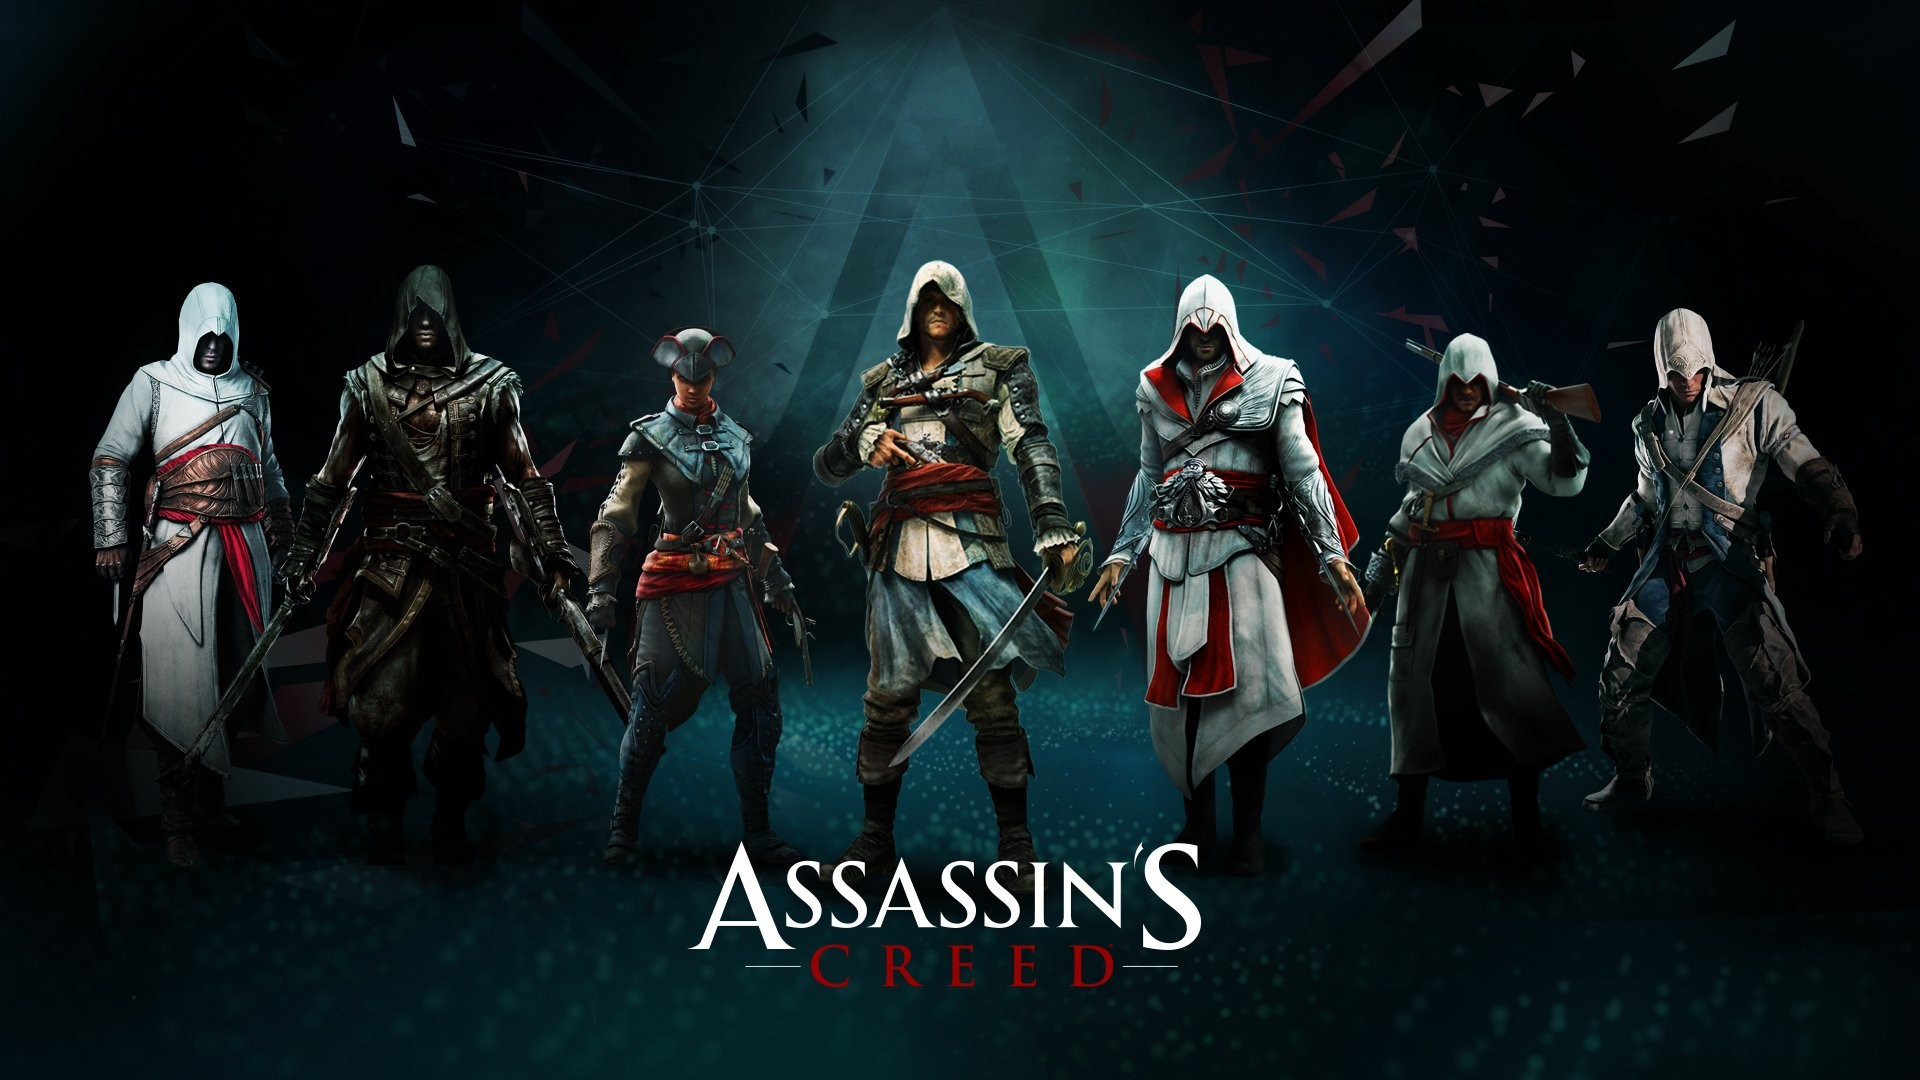 1920x1080 Computerspiele - Assassin's Creed Altair (Assassin's Creed) Connor (Assassin's  Creed) Ezio (